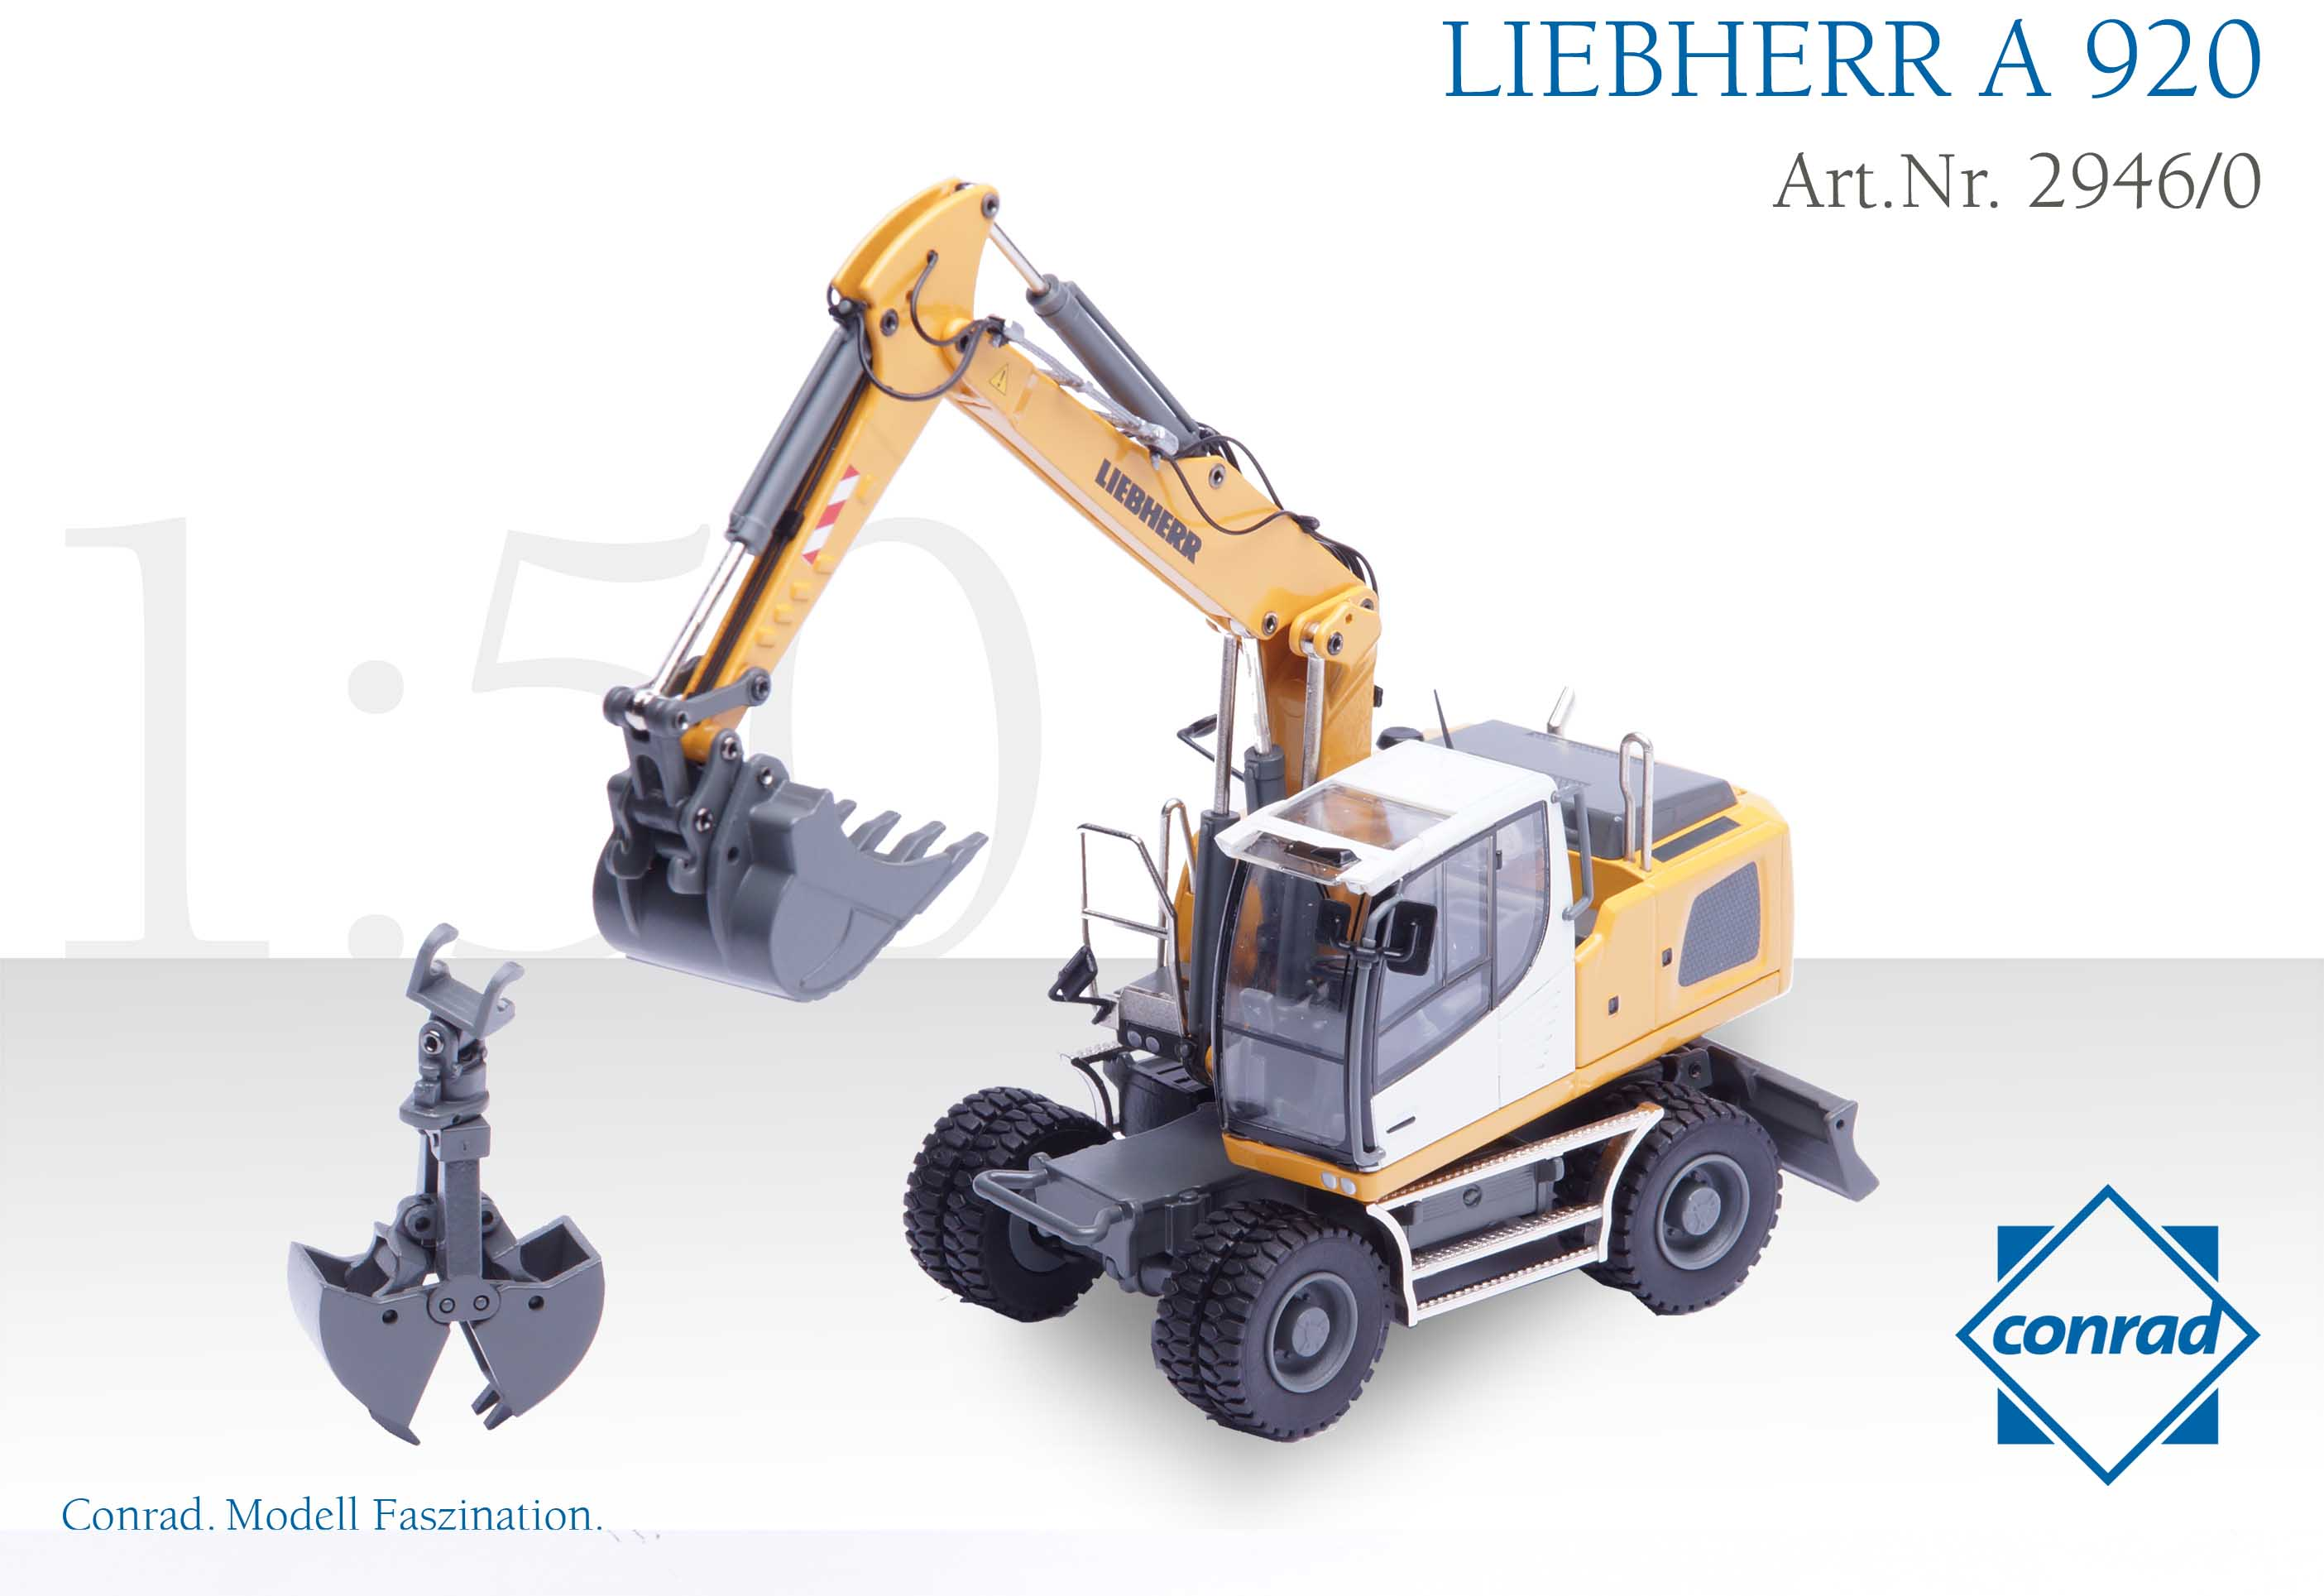 spiel modellkist 39 l shop liebherr mobilbagger a920 mit. Black Bedroom Furniture Sets. Home Design Ideas